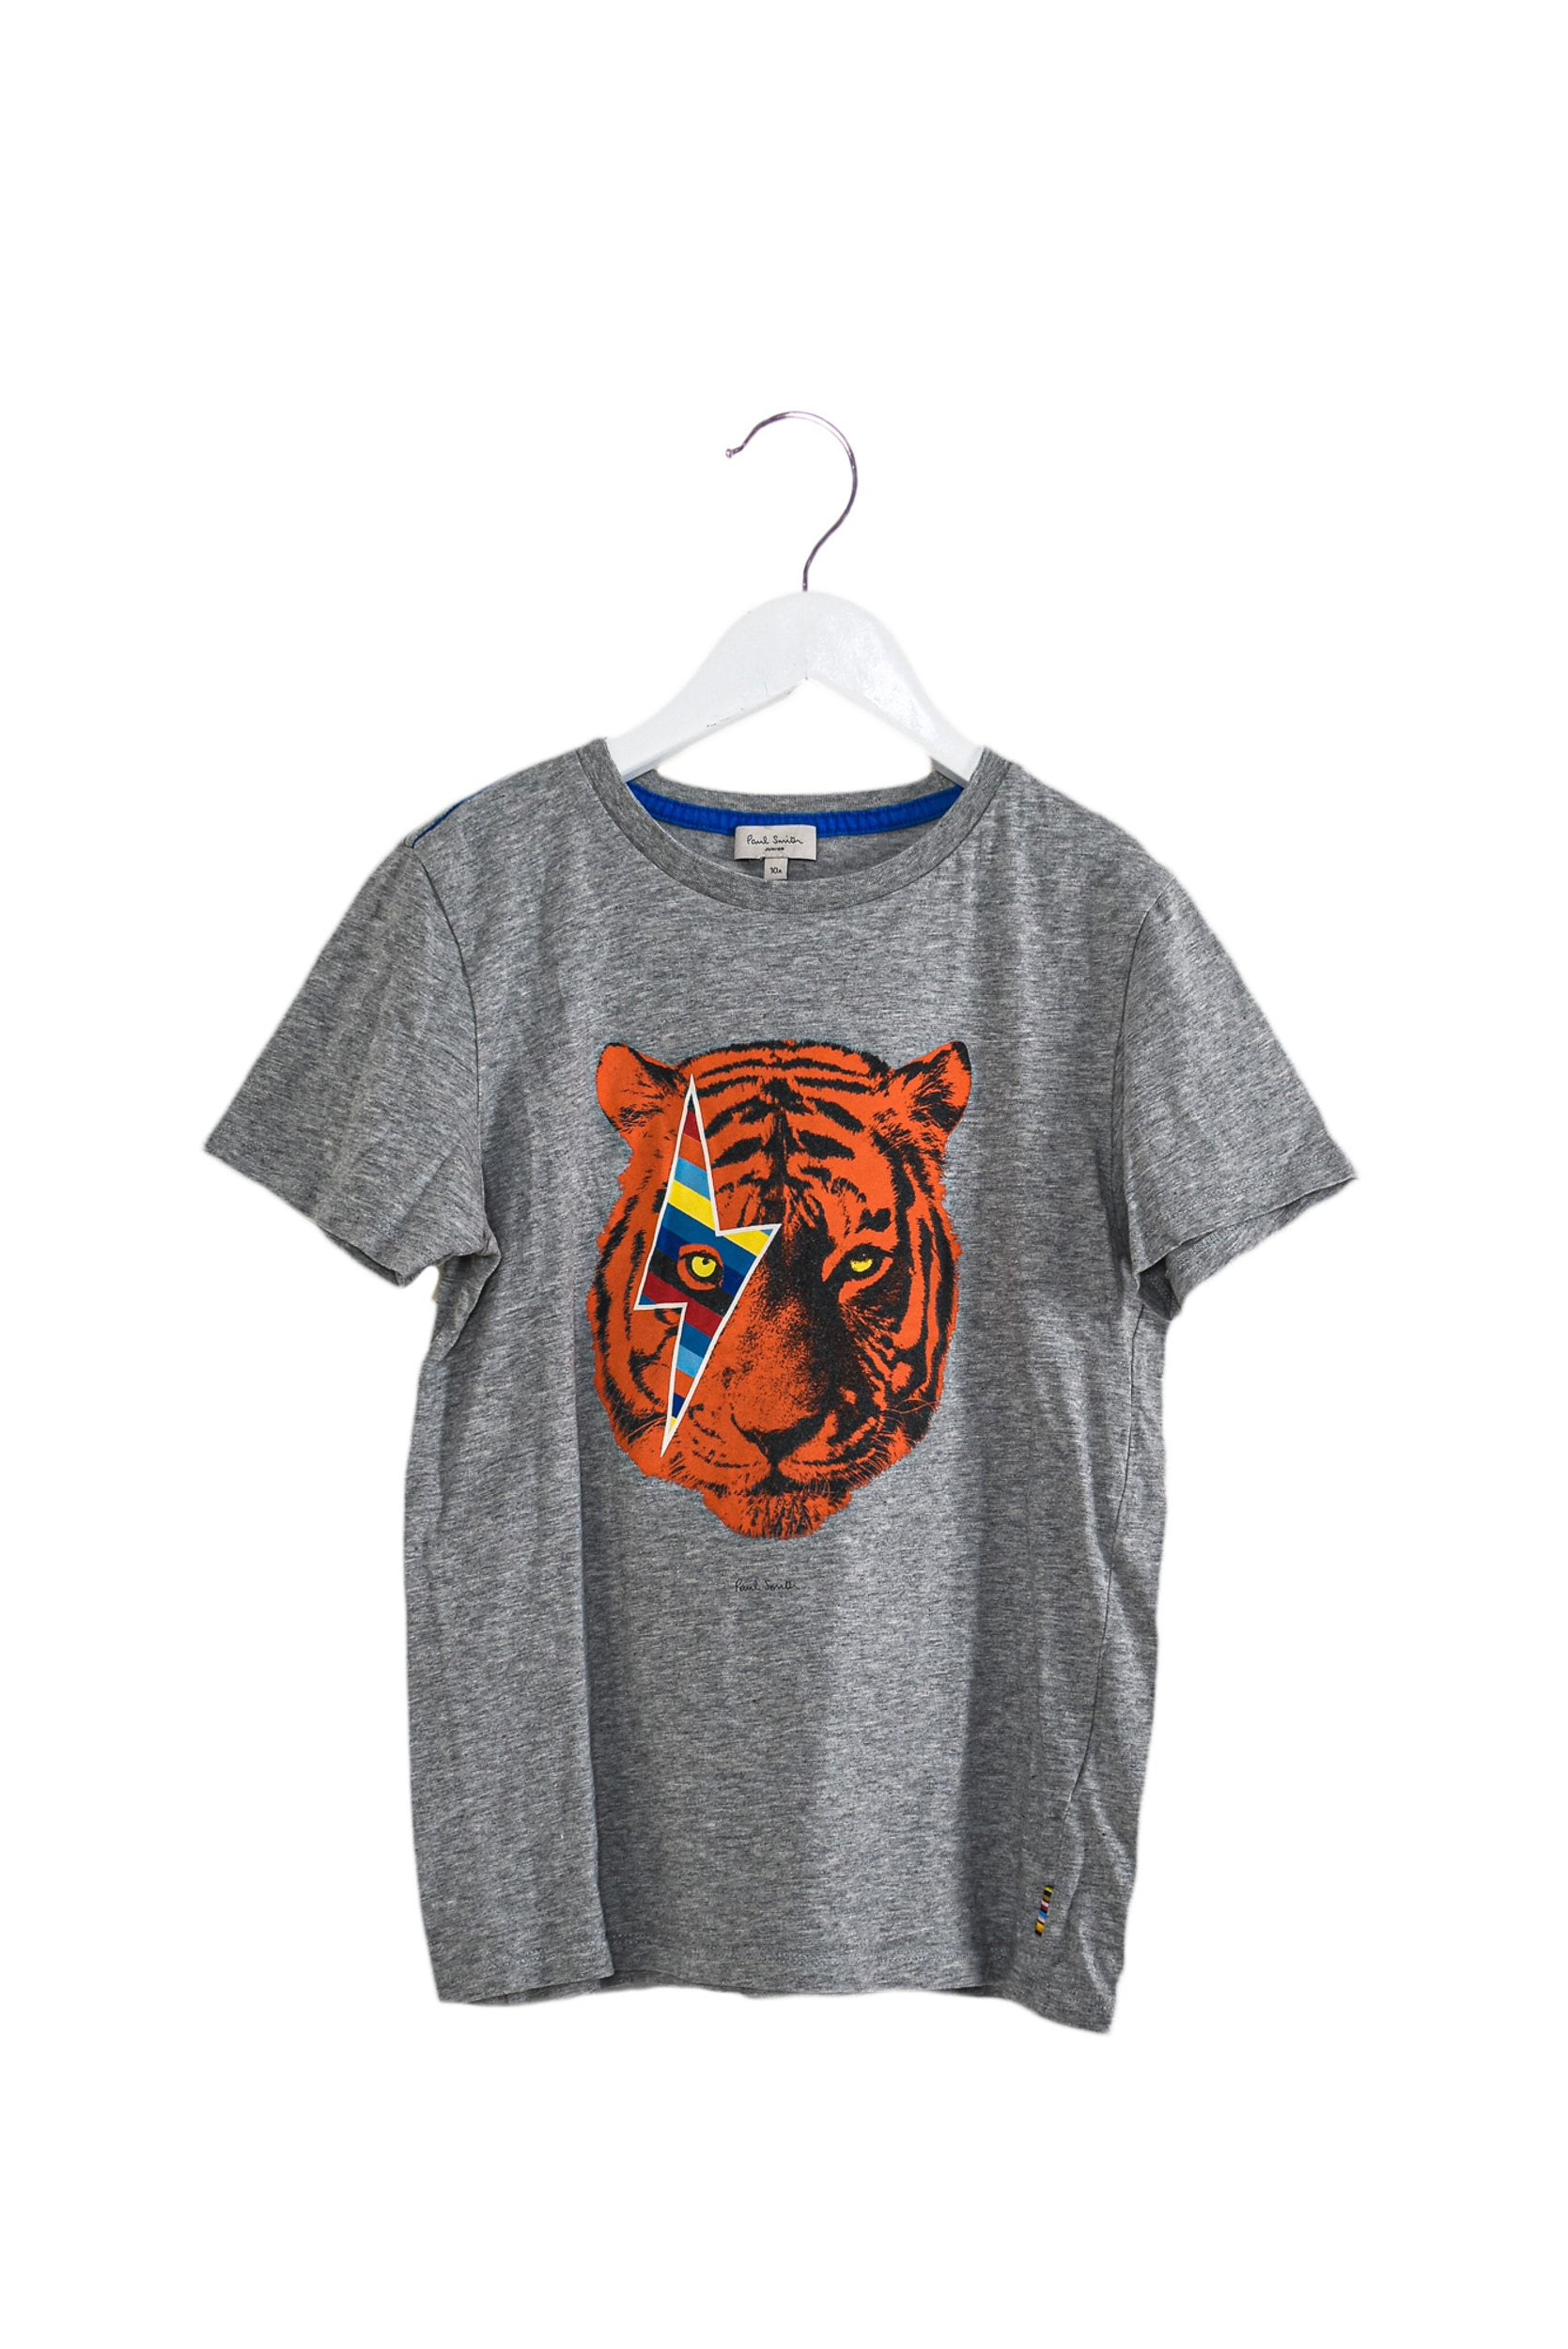 Paul Smith T-Shirt 10Y